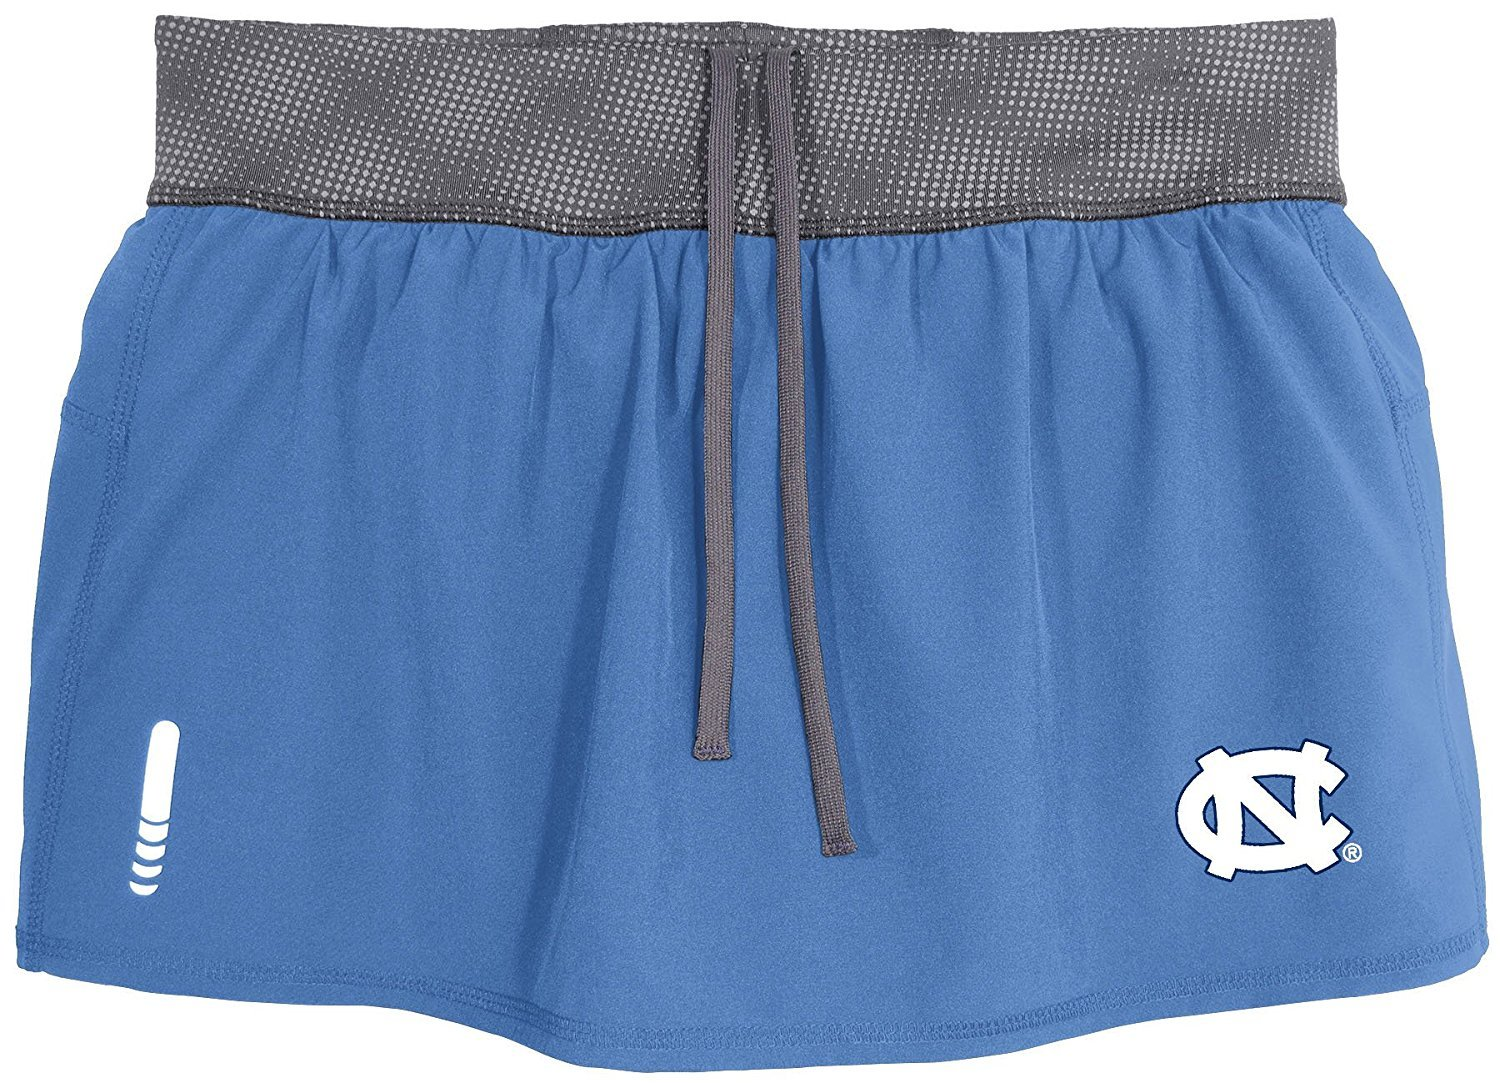 Primary image for  NCAA North Carolina Tarheels Women's Trend Captain Fitness Skort Size XL